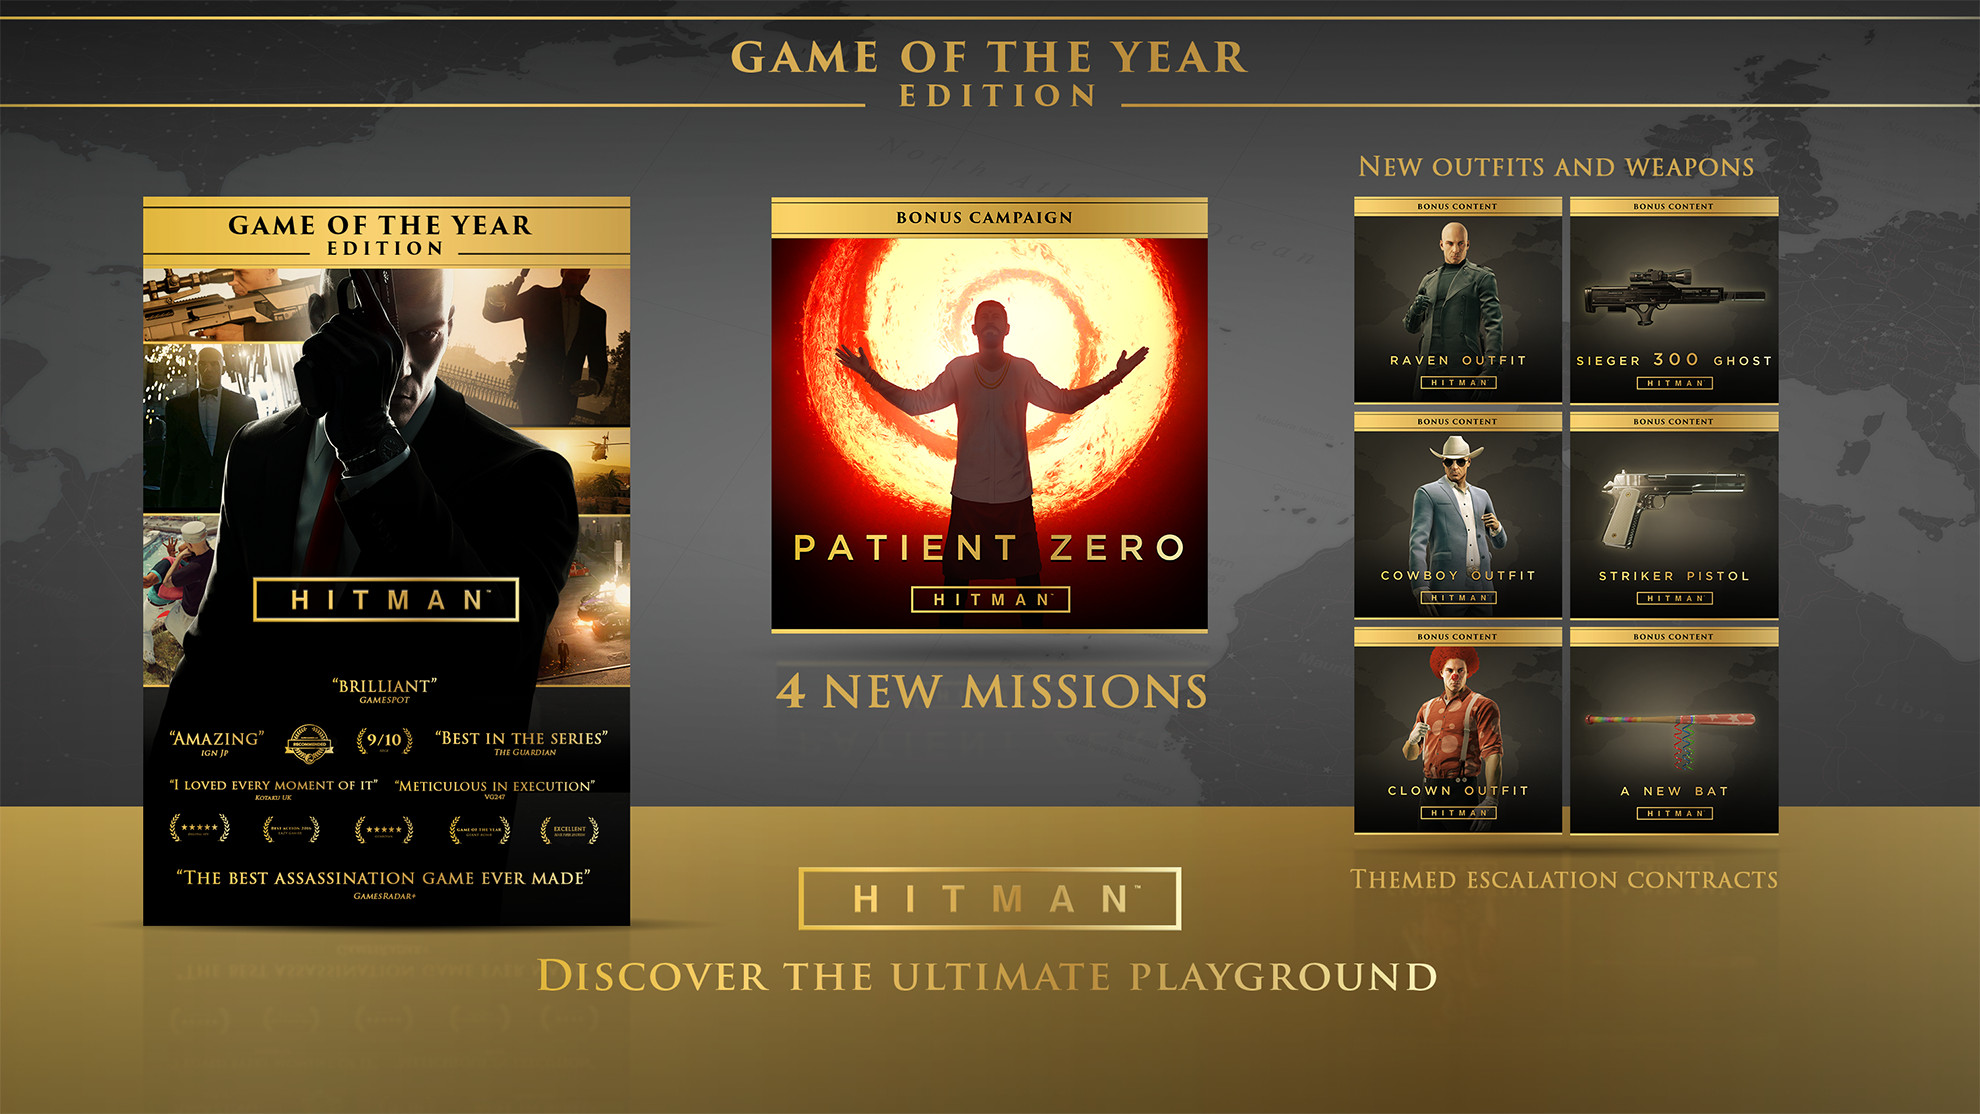 Visual identity for Game of the year edition.